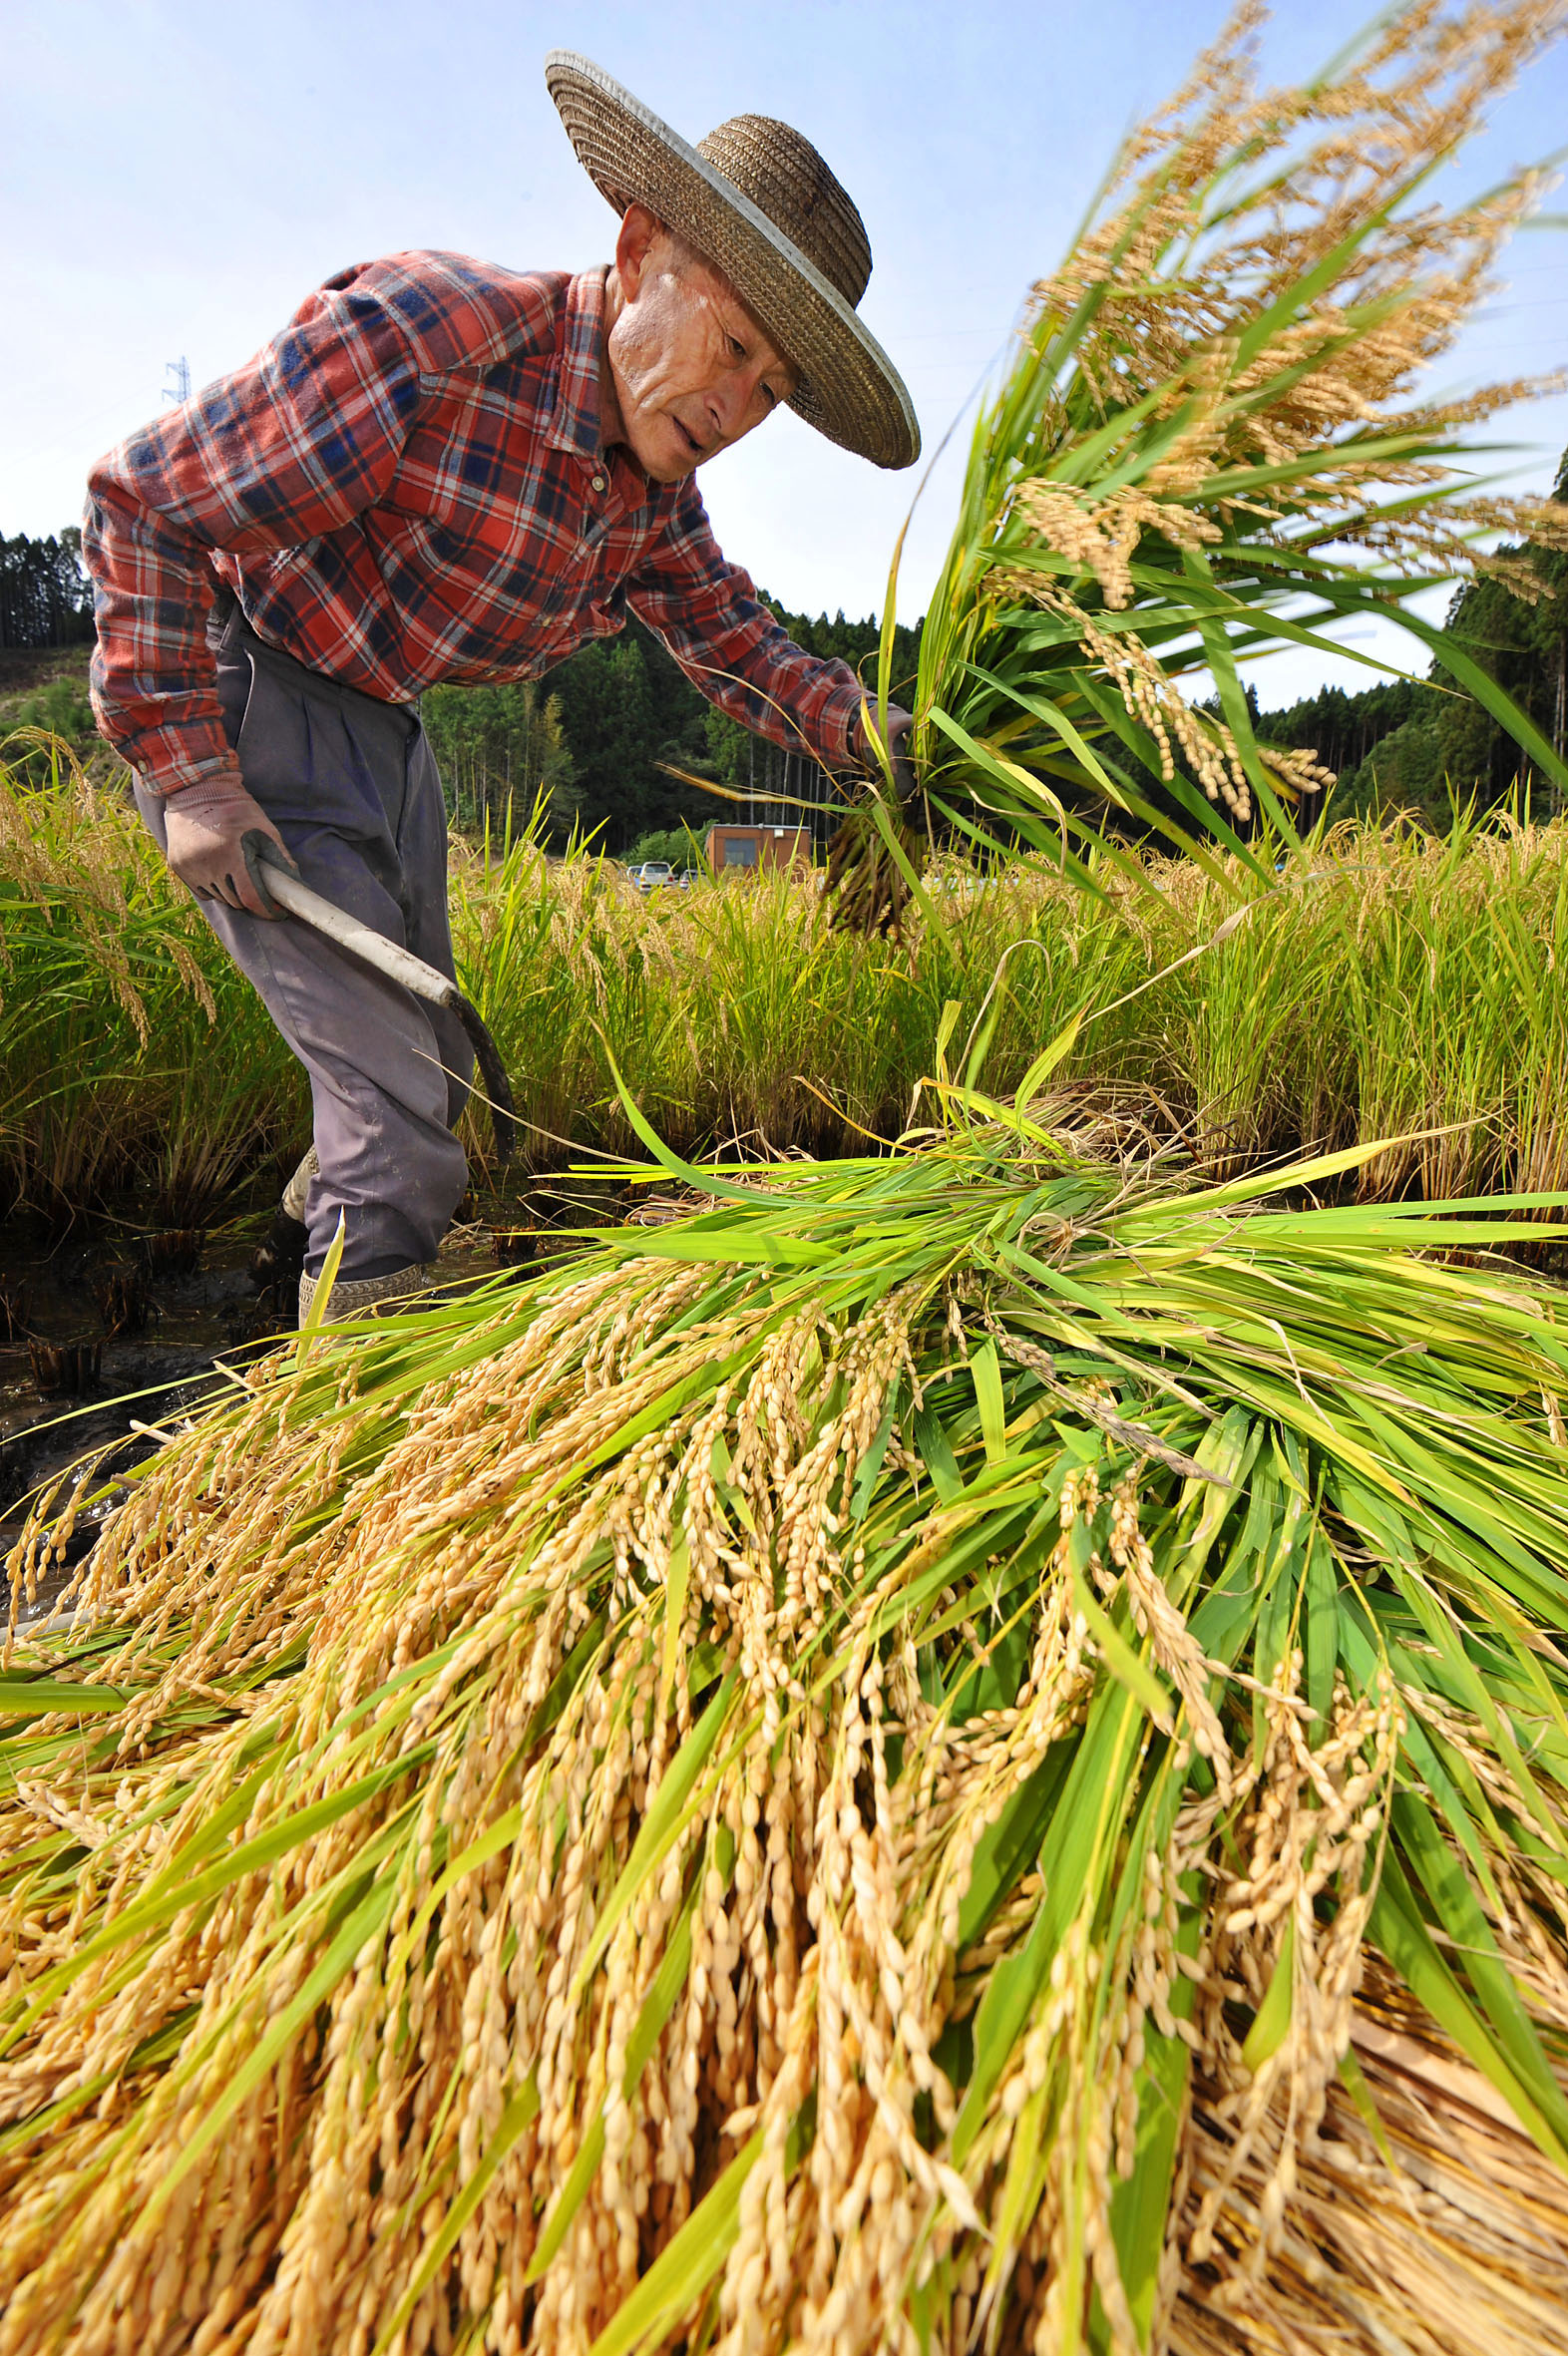 Tsuyoshi Kanno, a rice farmer of Rikuzentakata, Iwate Pref., harvests rice using a sickle.